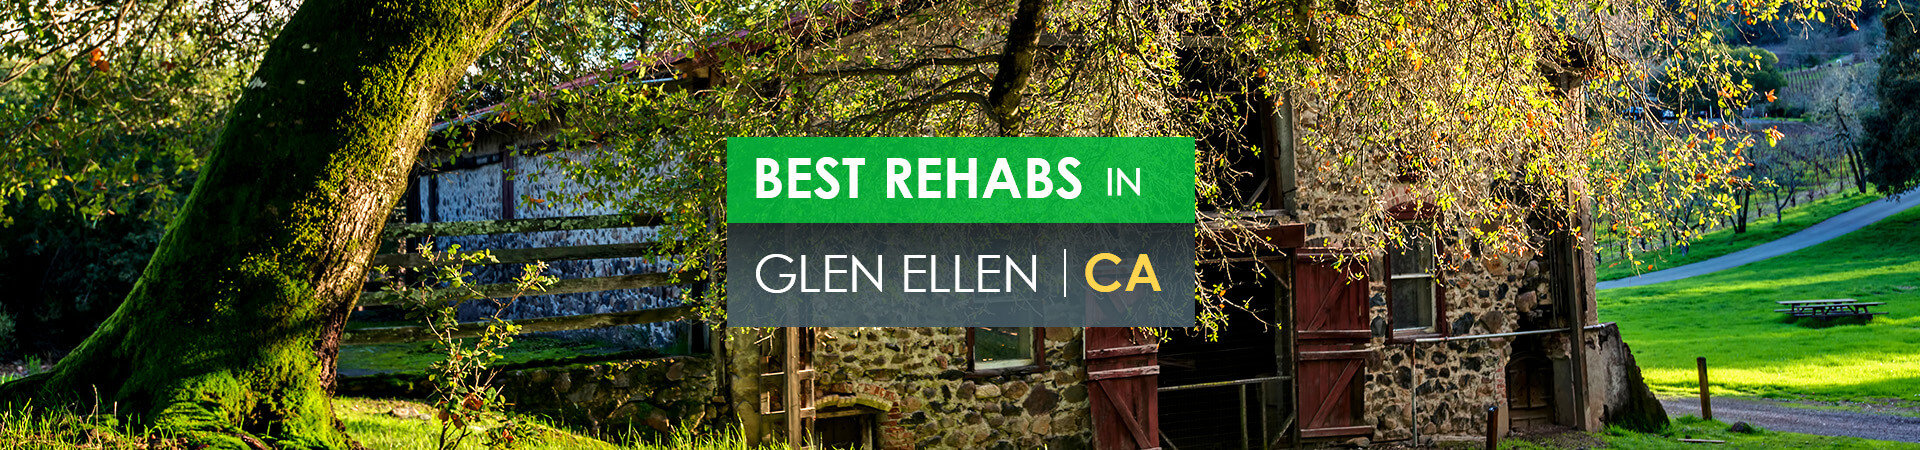 Best rehabs in Glen Ellen, CA